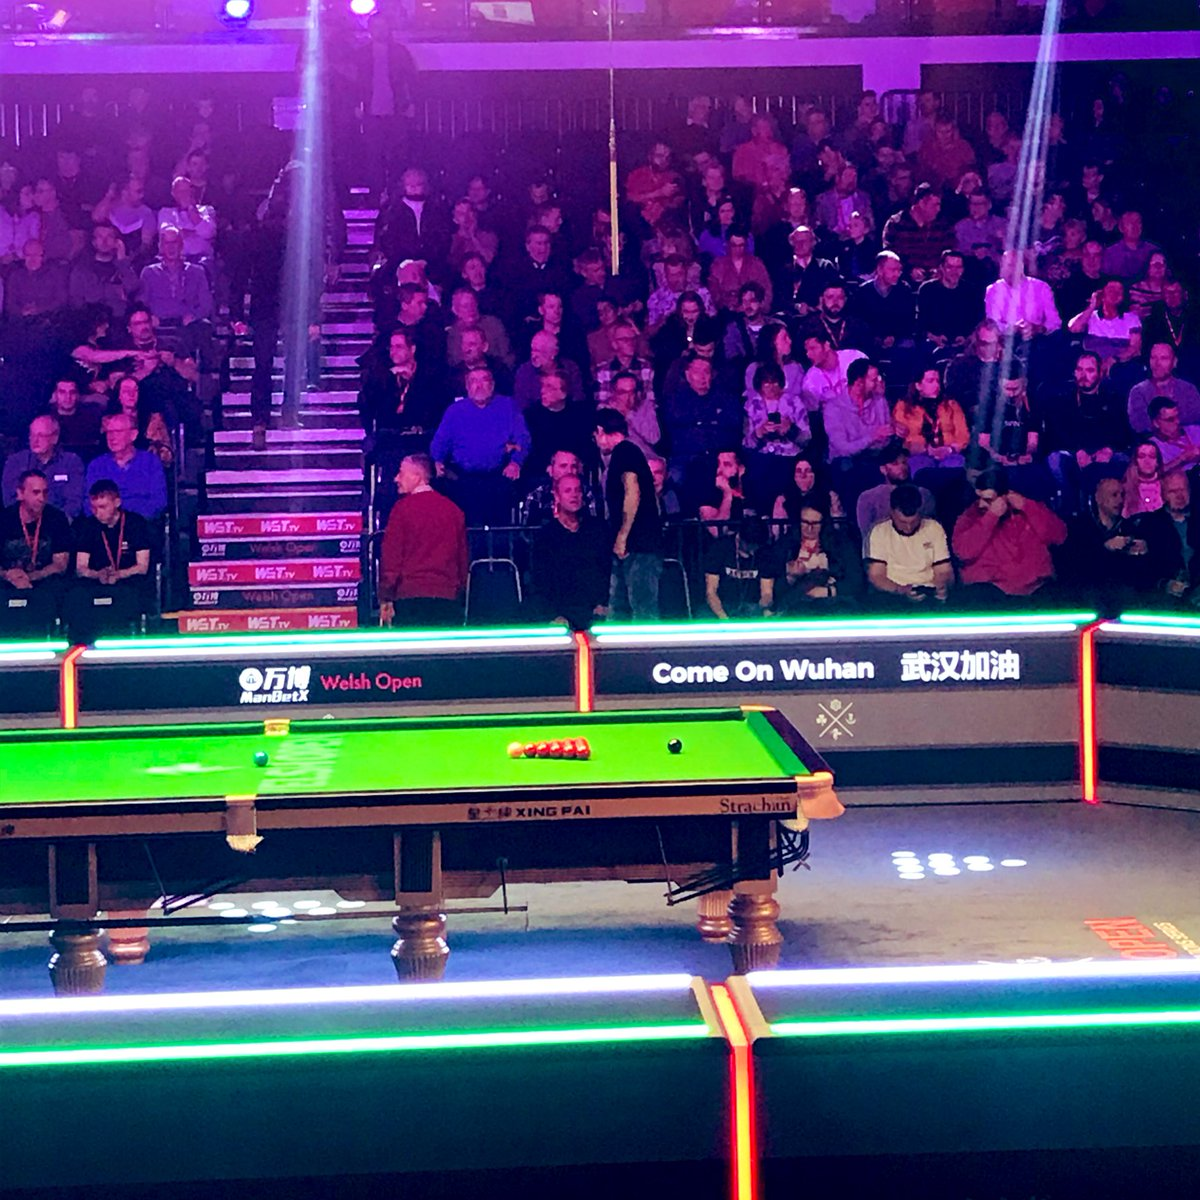 Where's the cueball going...? #bbcsnooker 🏴 – at Motorpoint Arena Cardiff